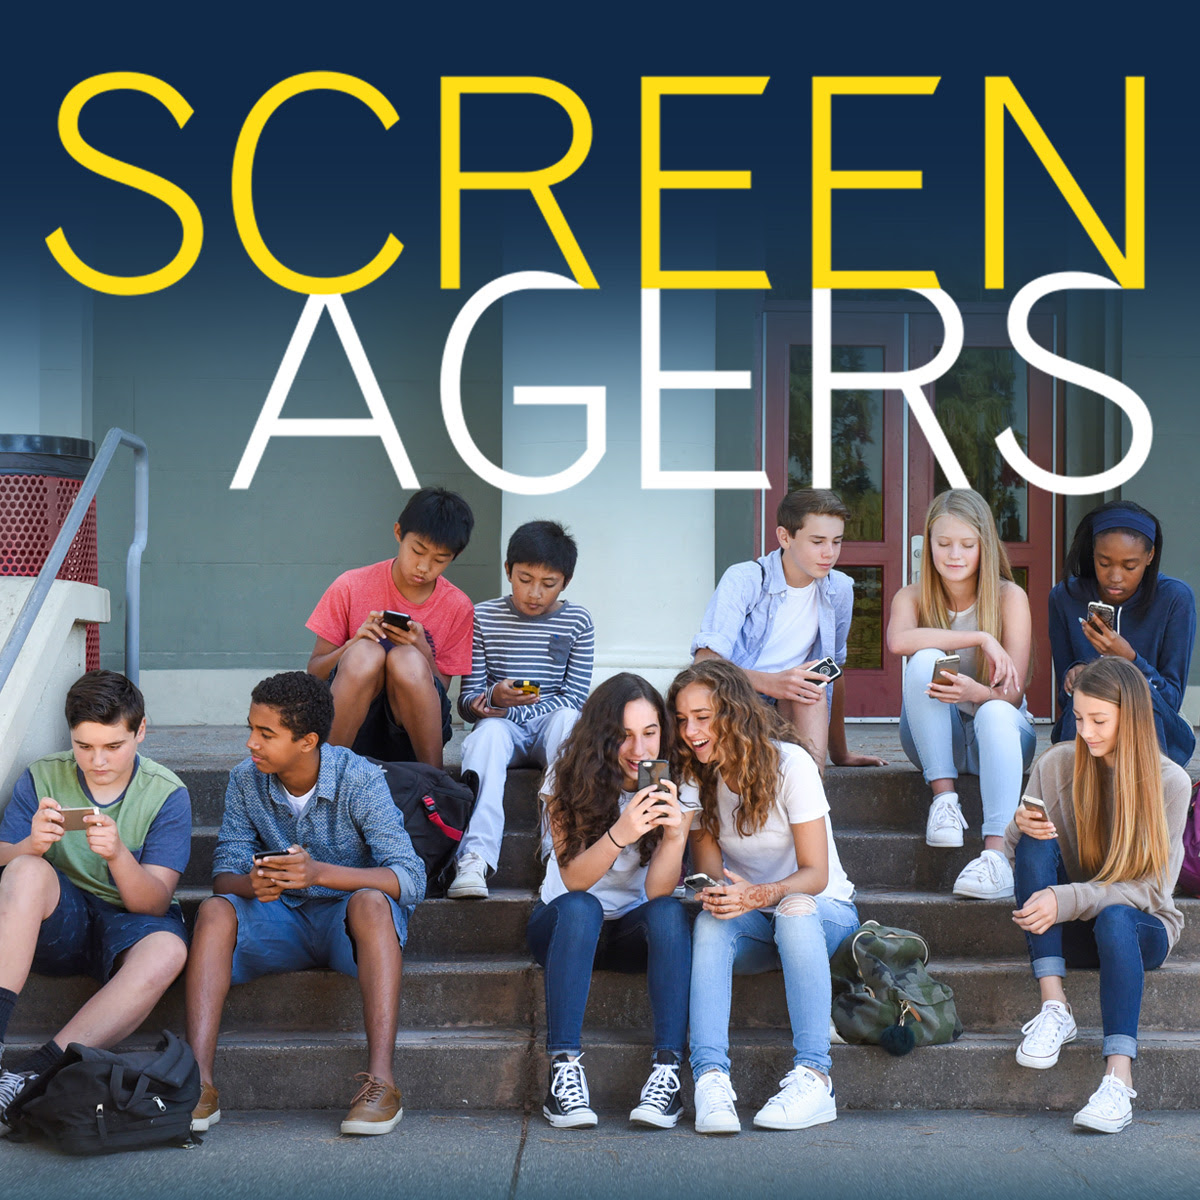 Screenagers Film Presented By Council on Chemical Abuse